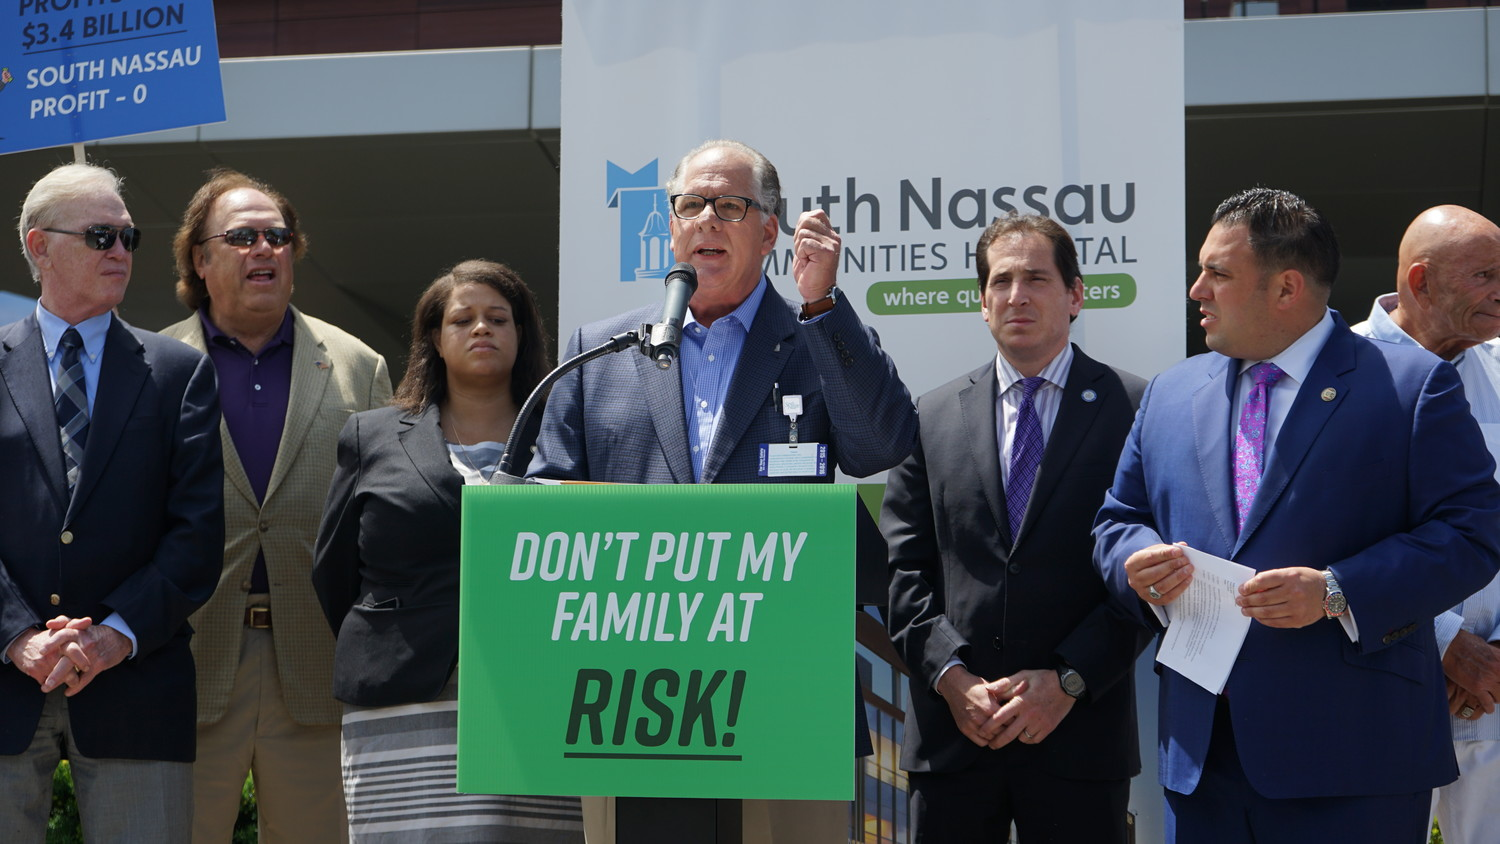 Hospital board Vice Chairman Tony Cancellieri called on Blue Cross to treat South Nassau fairly in its negotiations.